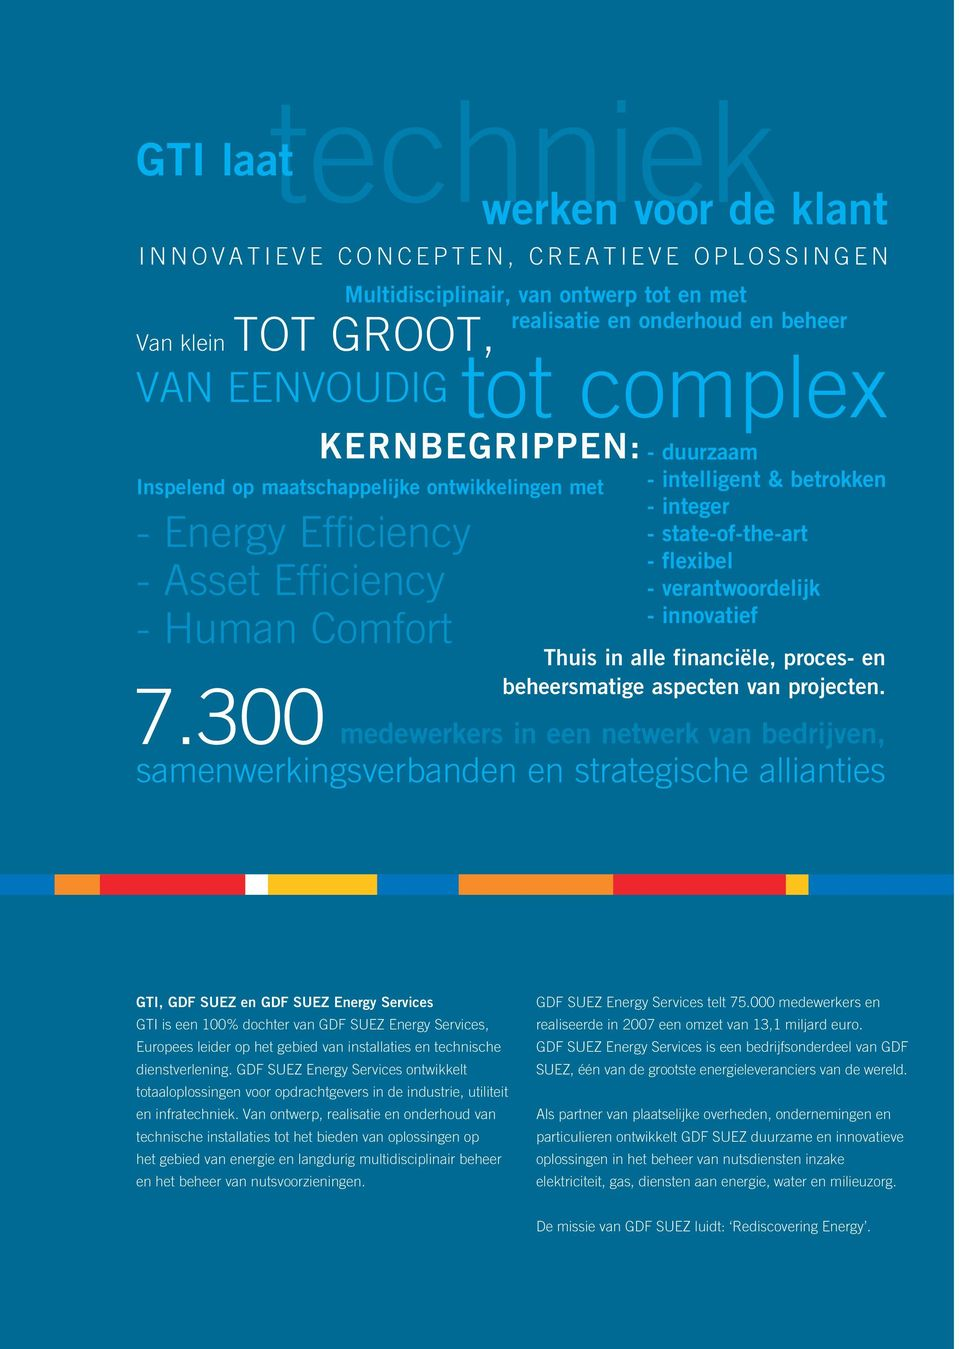 300 Kernbegrippen: - duurzaam Inspelend op maatschappelijke ontwikkelingen met - Energy Efficiency - Asset Efficiency - Human Comfort - intelligent & betrokken - integer - state-of-the-art - flexibel